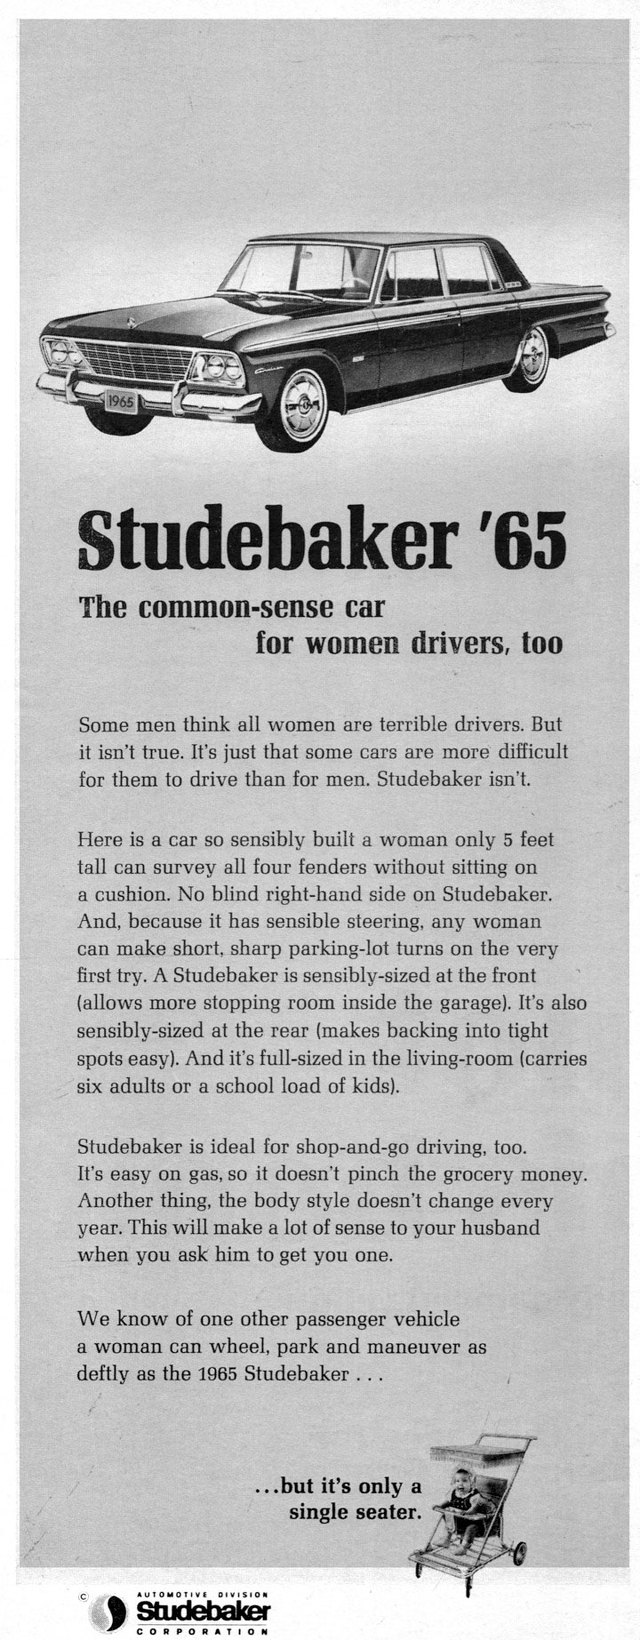 Studebaker '65  The common-sense car for women drivers, too  Some men think all women are terrible drivers. But it isn't true. It's just that some cars are more difficult for them to drive than for men. Studebaker isn't.  Here is a car so sensibly built a woman only 5 feet tall can survey all four fenders without sitting on a cushion. No blind right-hand side on Studebaker. And, because it has sensible steering, any woman can make short, sharp parking-lot turns on the very first try. A Studebaker is sensibly-sized at the front (allows more stopping room inside the garage). It's also sensibly-sized at the rear (makes backing into tight spots easy). And it's full-sized in the living-room (carries six adults or a school load of kids).  Studebaker is ideal for shop-and-go driving, too. It's easy on gas, so it doesn't pinch the grocery money. Another thing, the body style doesn't change every year. This will make a lot of sense to your husband when you ask him to get you one.  We know of one other passenger vehicle a woman can wheel, park and maneuver as deftly as the 1965 Studebaker .. .  ...but it's only a single seater.   C •v101.10TIVE DIVISION  Studebaker CORPOPATIOPI